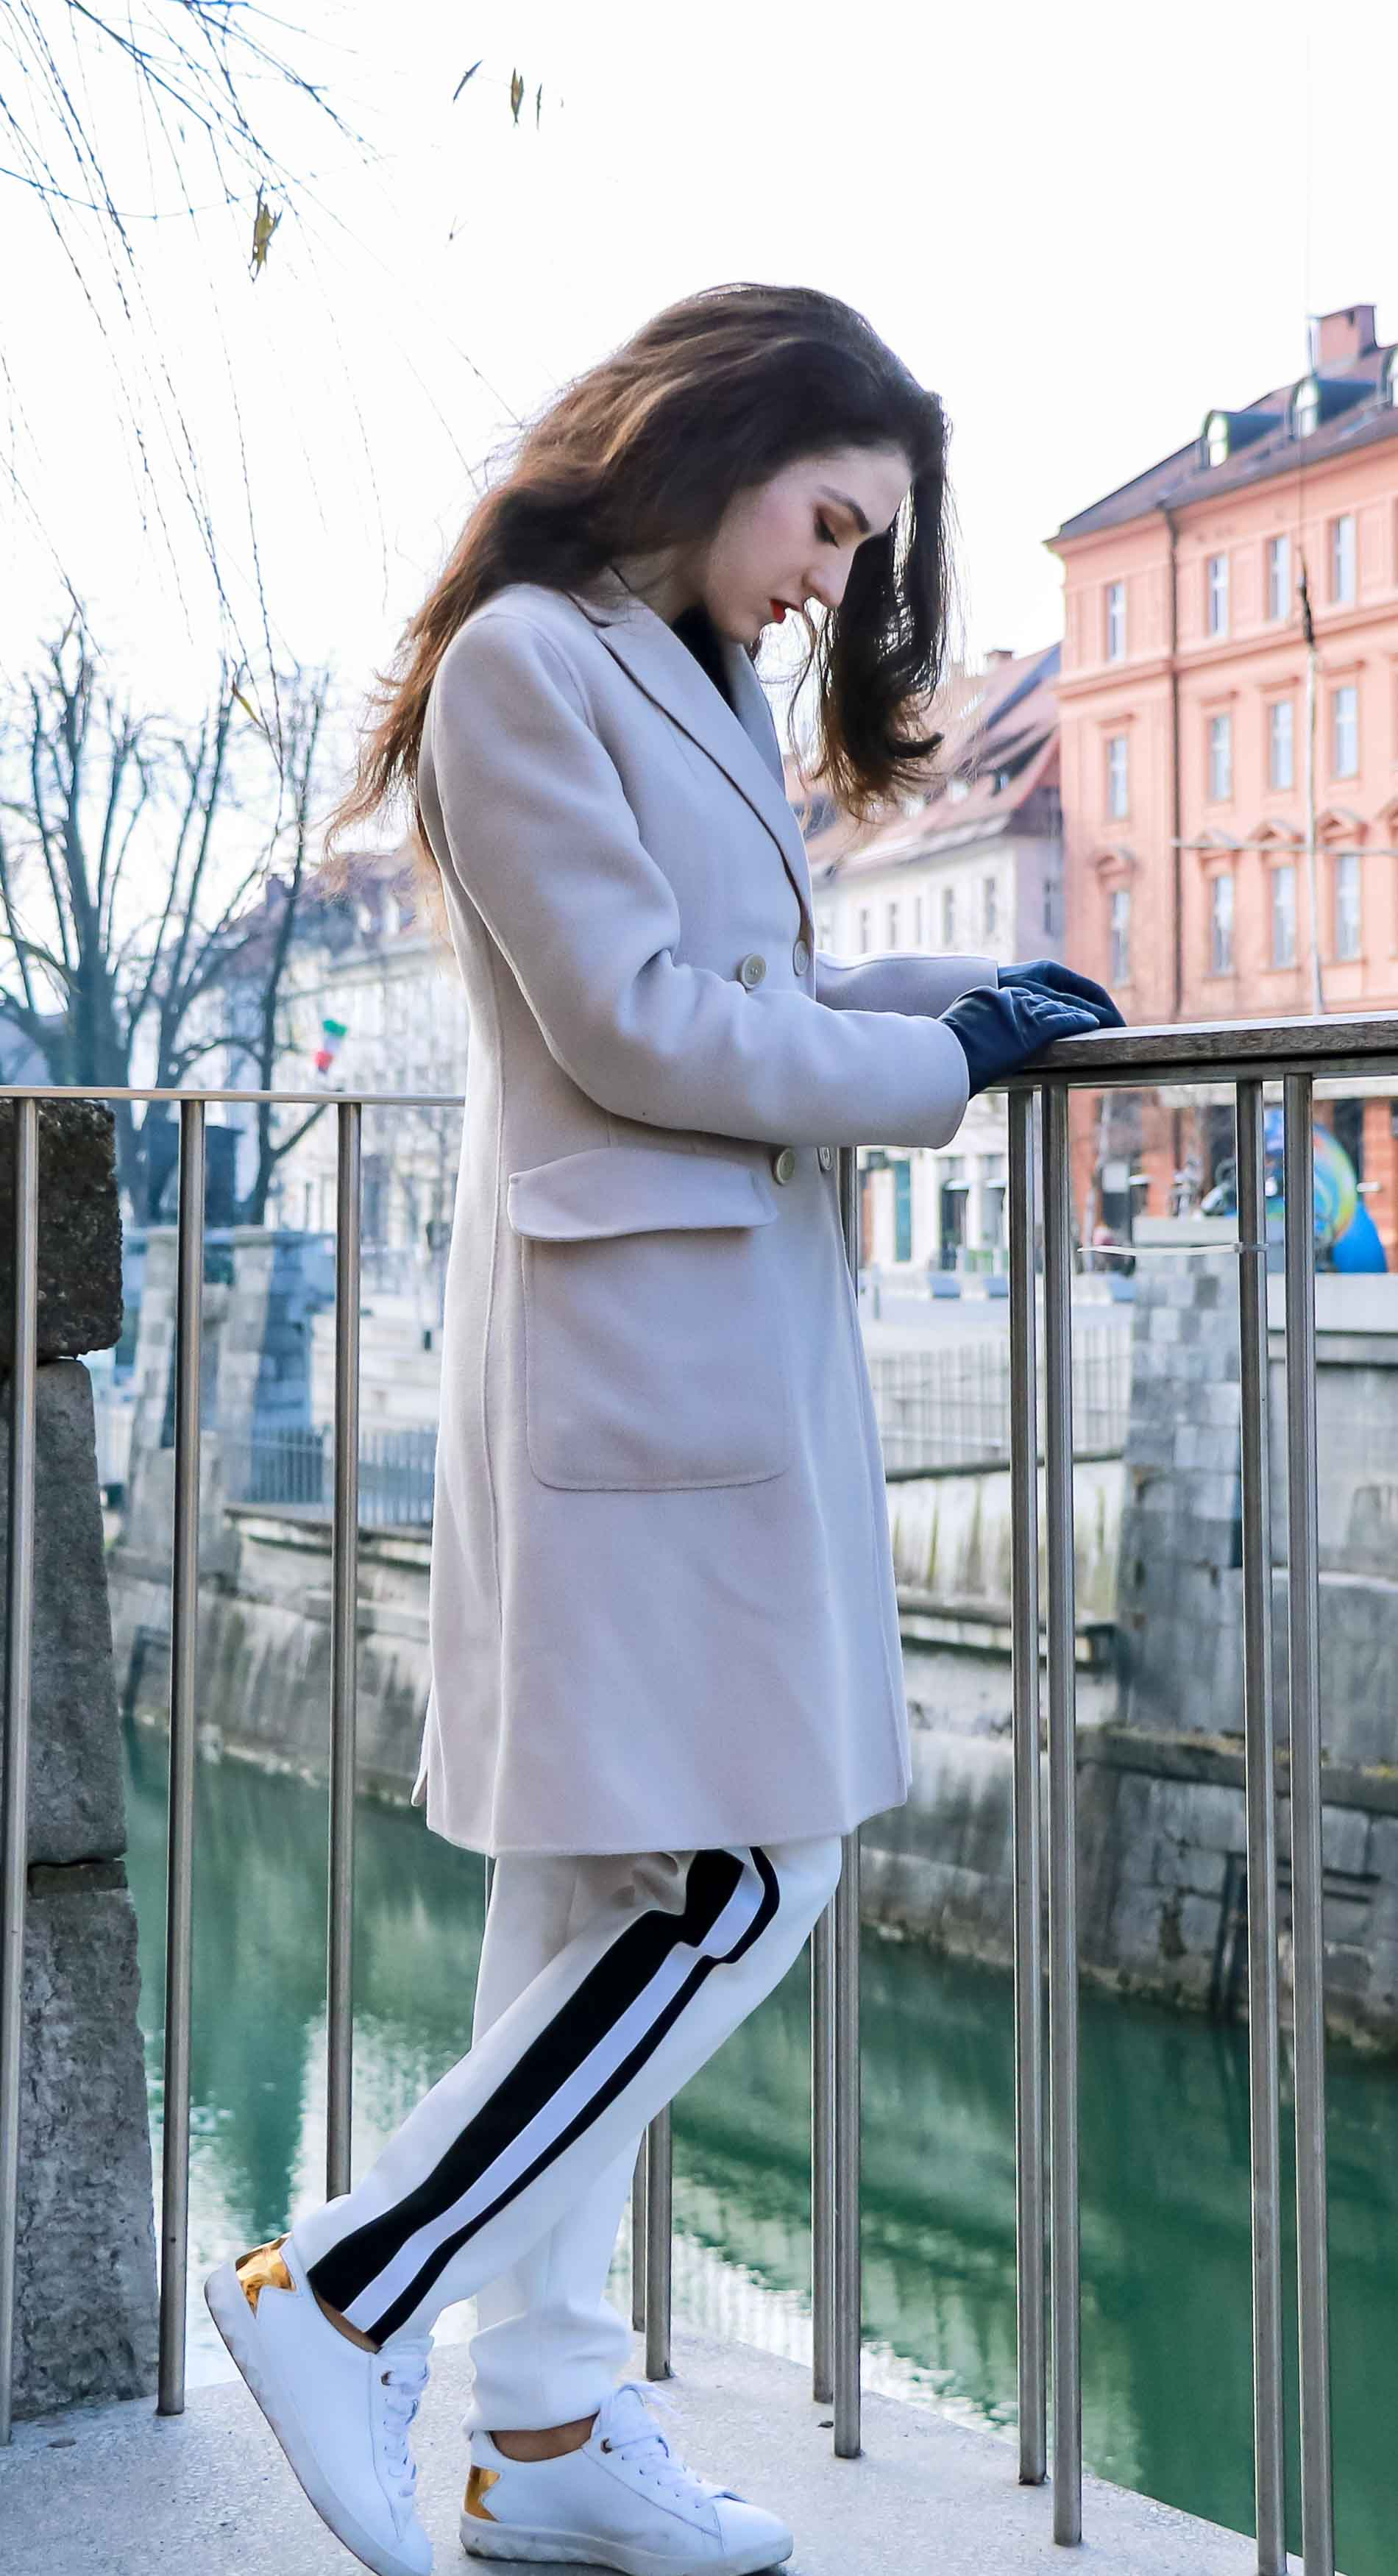 - Fashion Blogger Veronika Lipar of Brunette from Wall Street wearing white track pants with black side stripe from Escada, black silk blouse, off-white pastel double breasted coat from Weekend Max Mara, white leather sneakers from Diesel, yellow shoulder bag from Escada while standing above the river Ljubljanica in Ljubljana